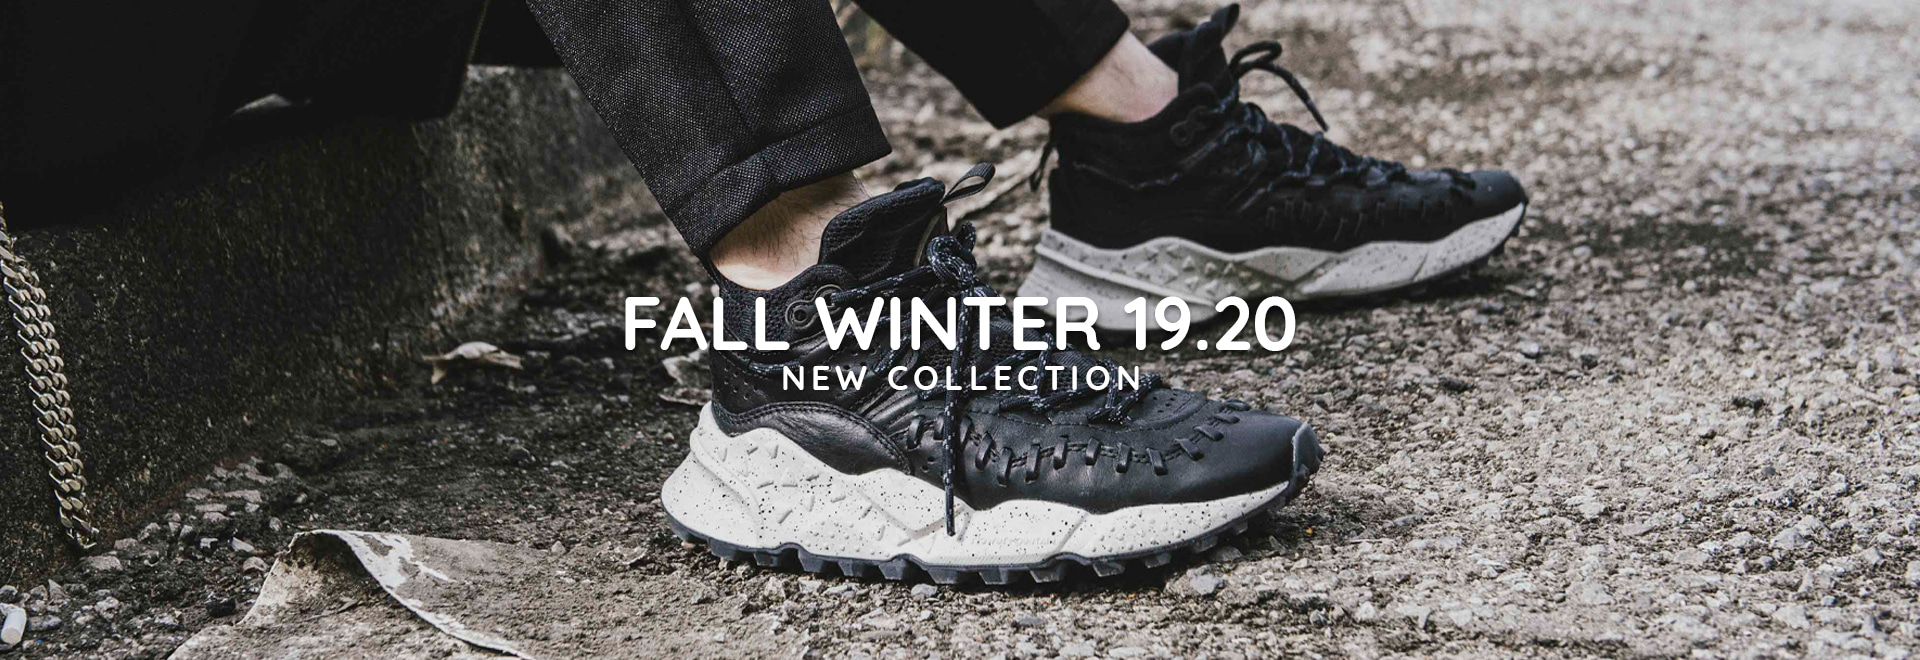 Spring-Summer 2019 Collection - 1